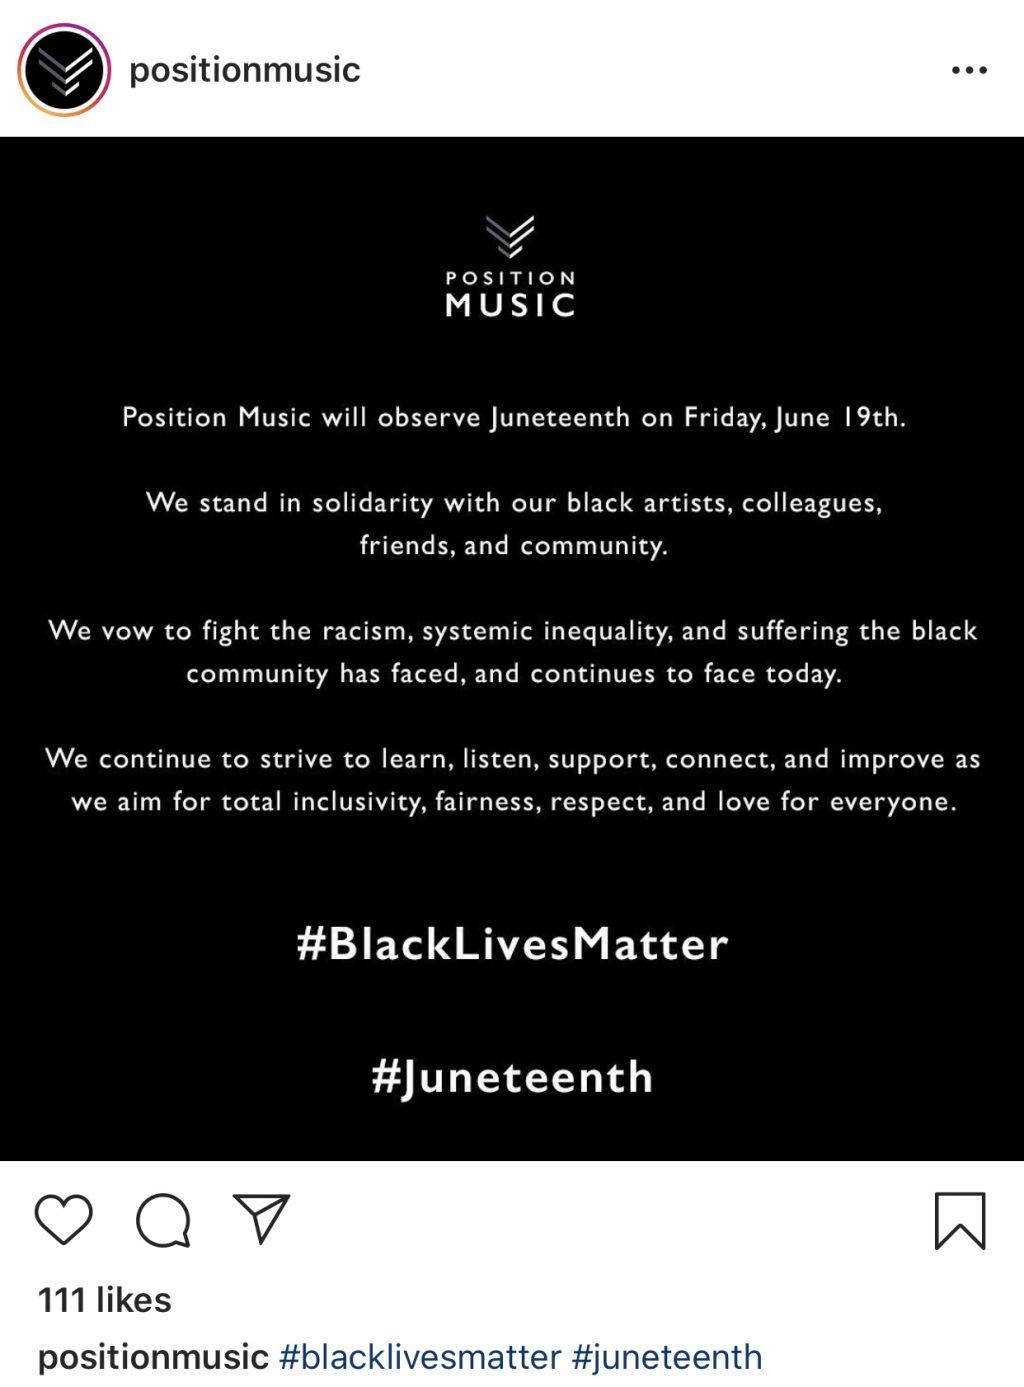 Position Music issues the above statement in observance of Juneteenth. Many companies in the music industry gave their employees the day off to observe the holiday celebrating the emancipation of slavery. Photo courtesy of Instagram